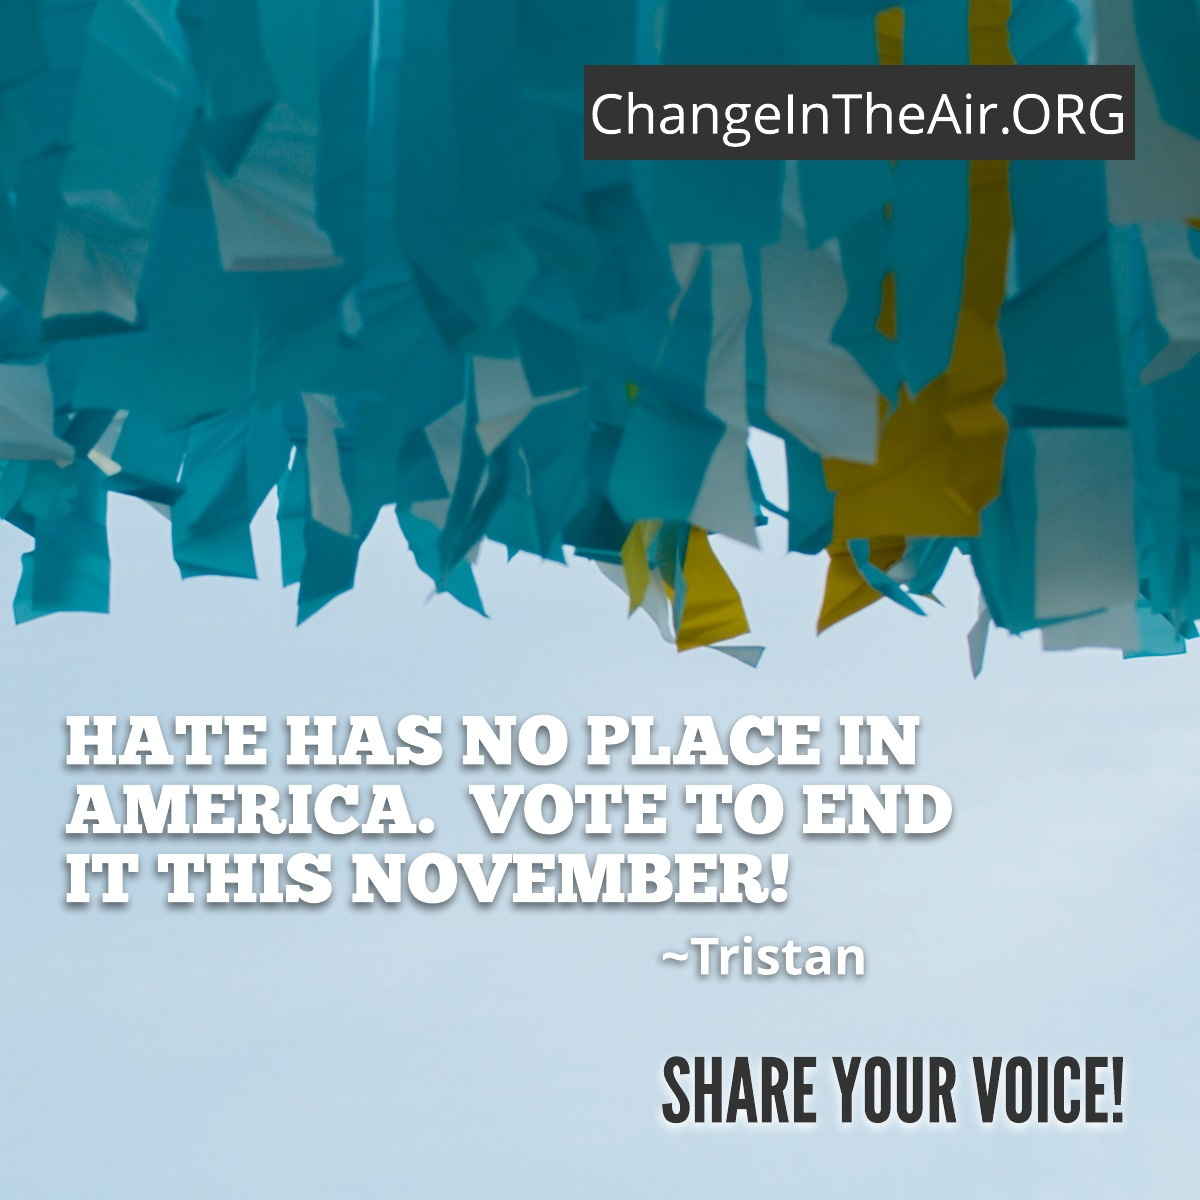 Change in the Air quote. Hate has not place in America. Vote to end it this November.